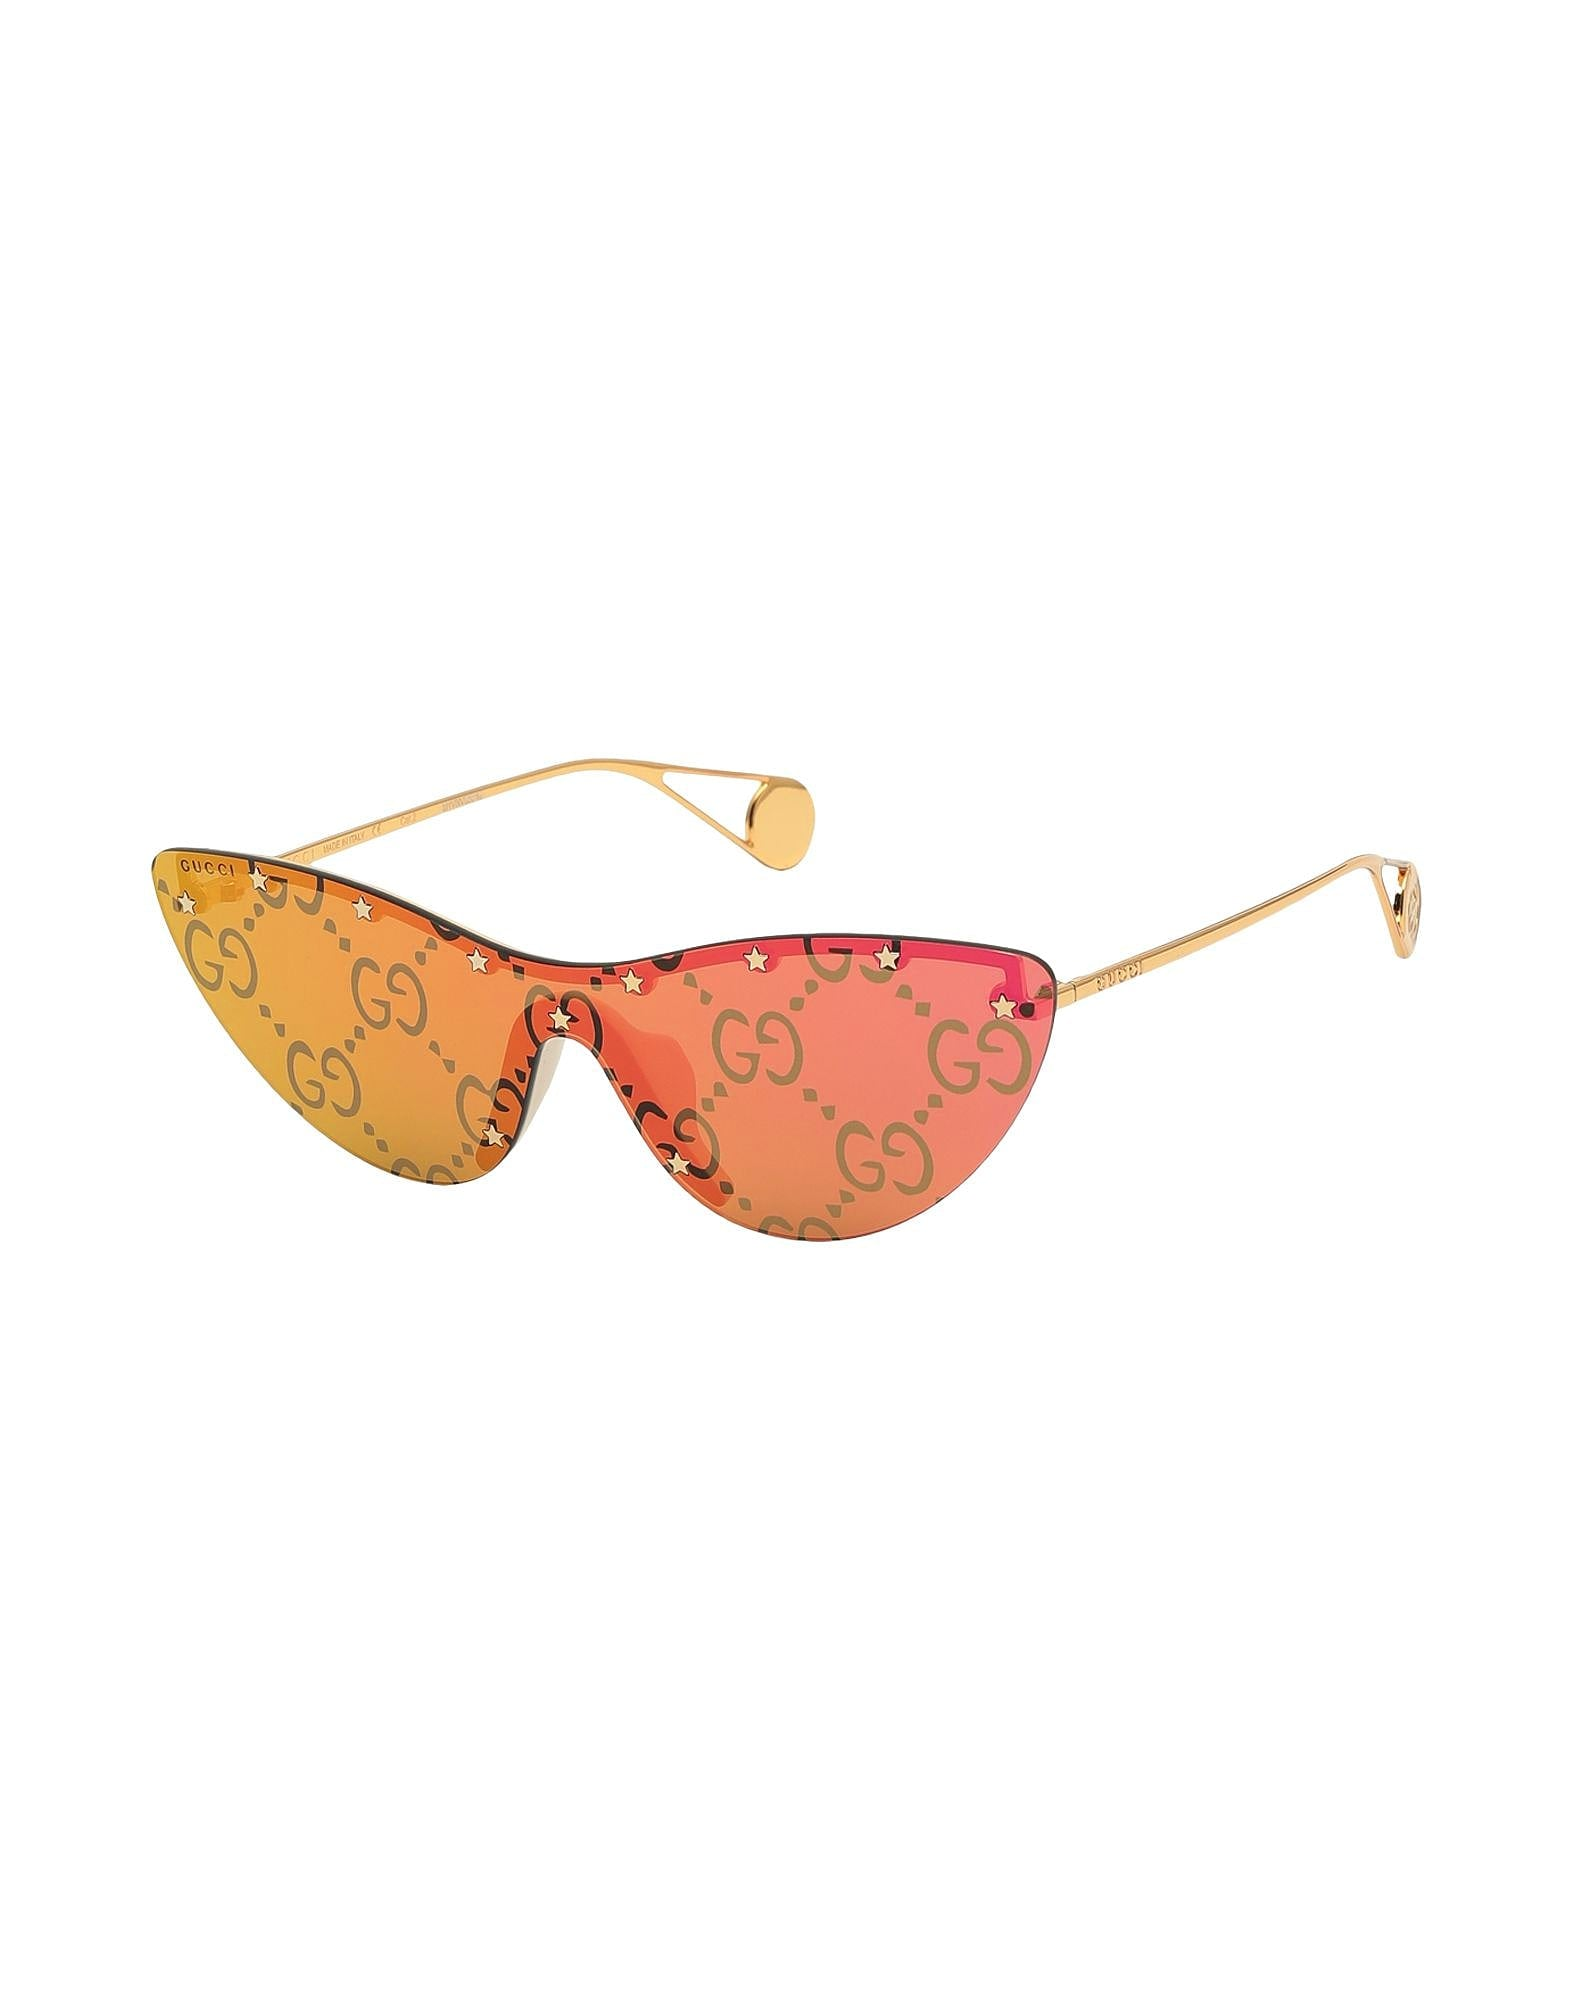 GUCCI Sunglasses Yellow - Pink 99 mm